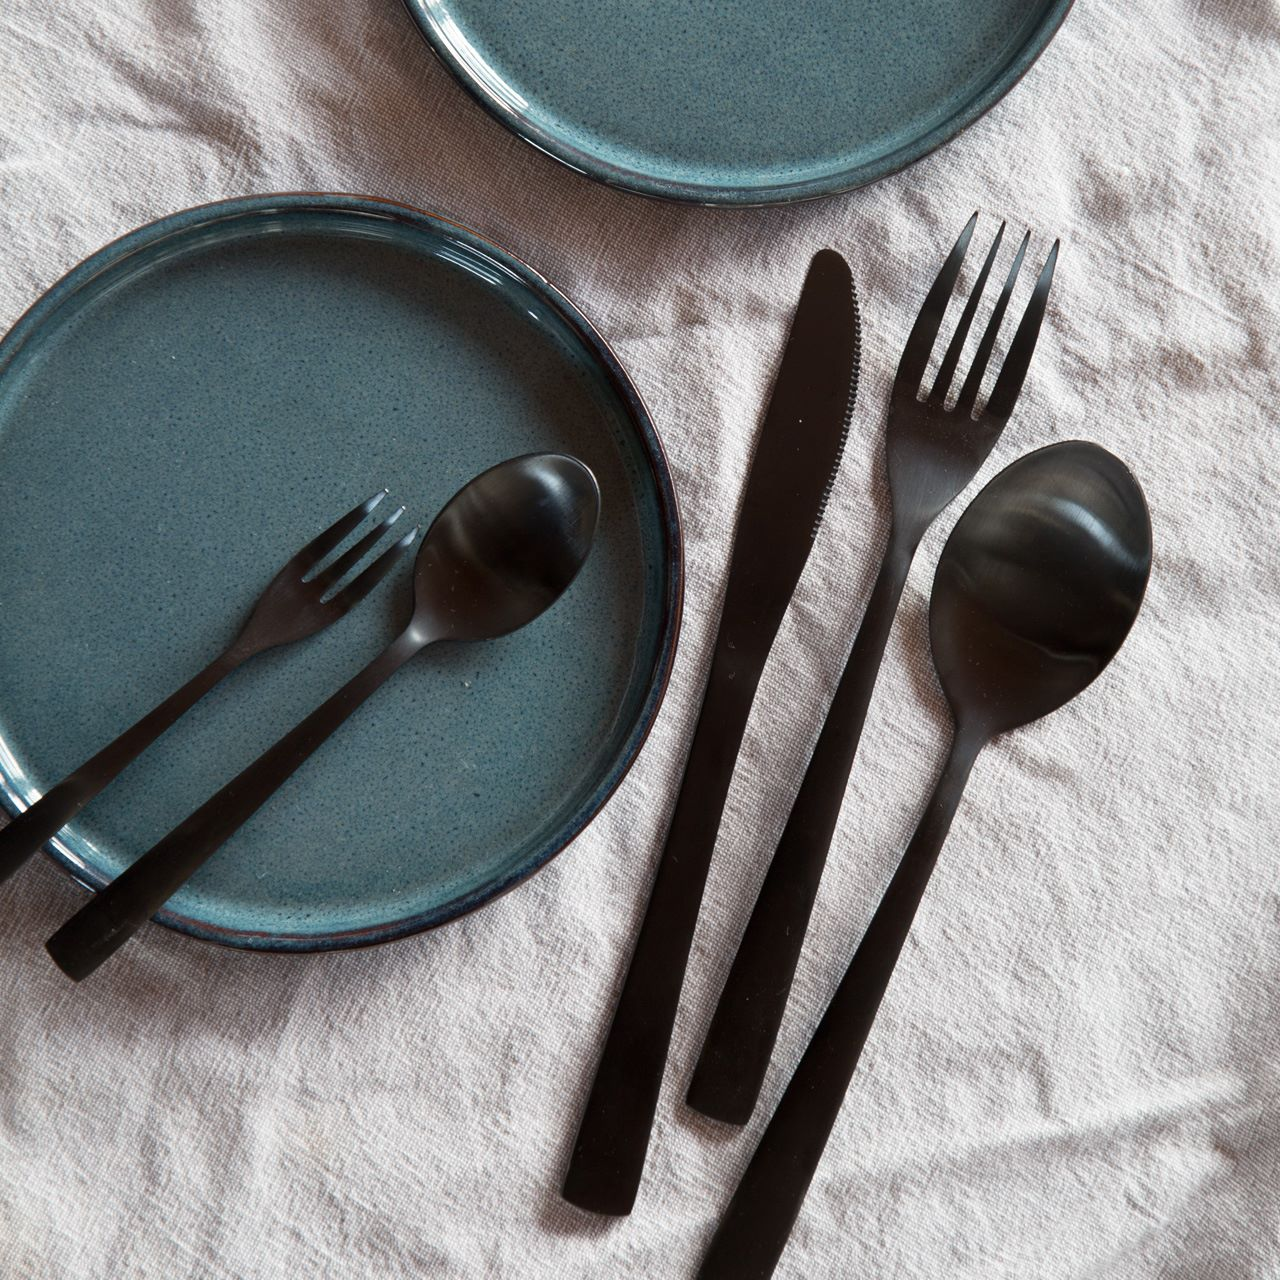 Black cutlery from Søstrene Grene